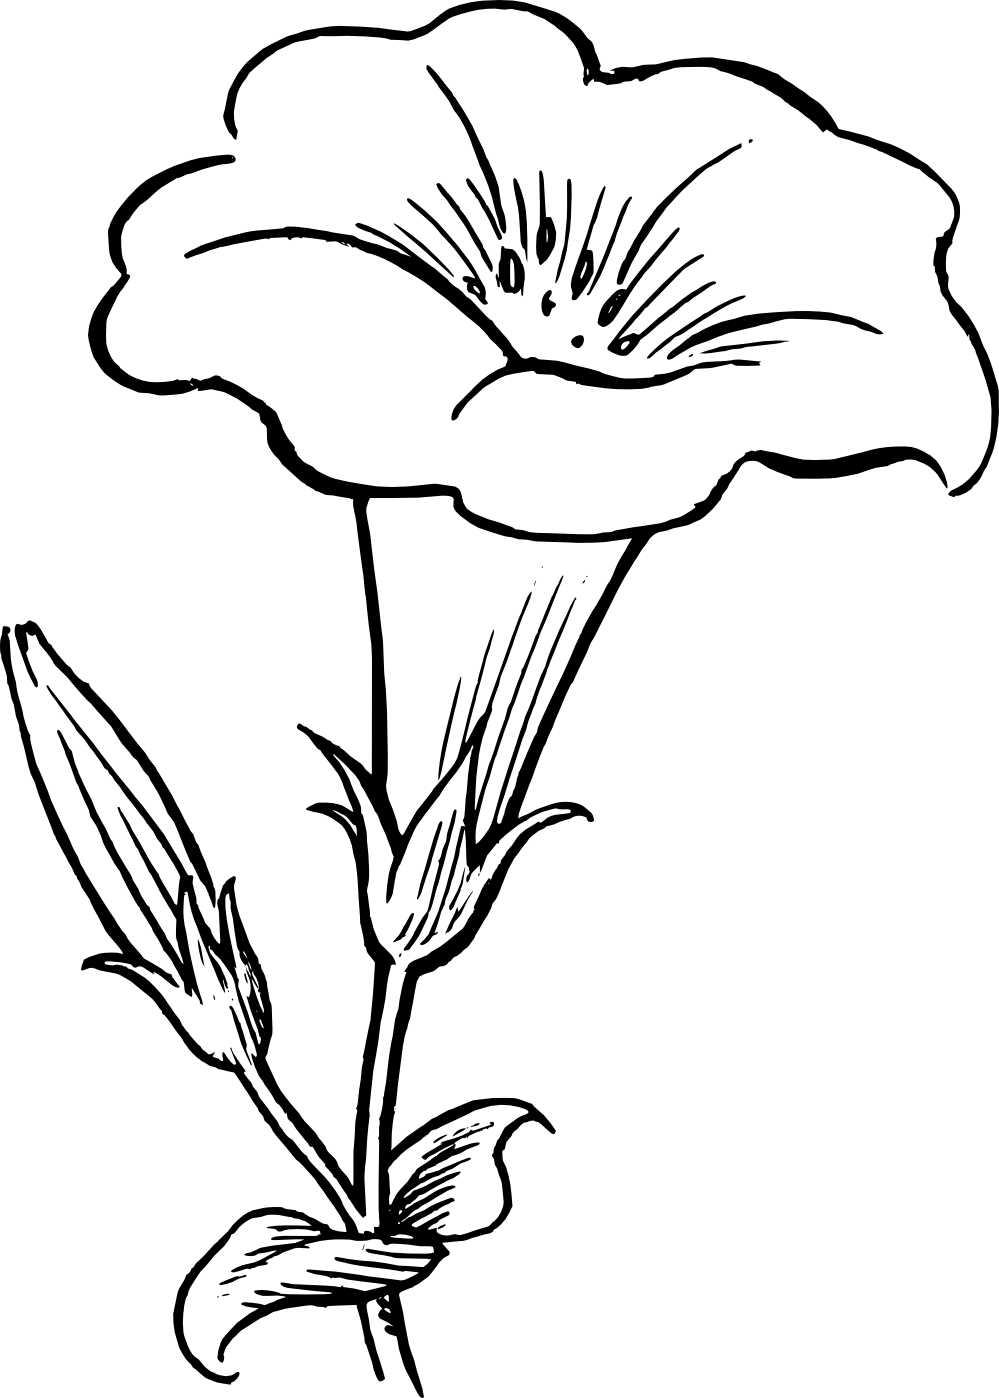 Flower black and white. Daffodil clipart illustration clip art stock